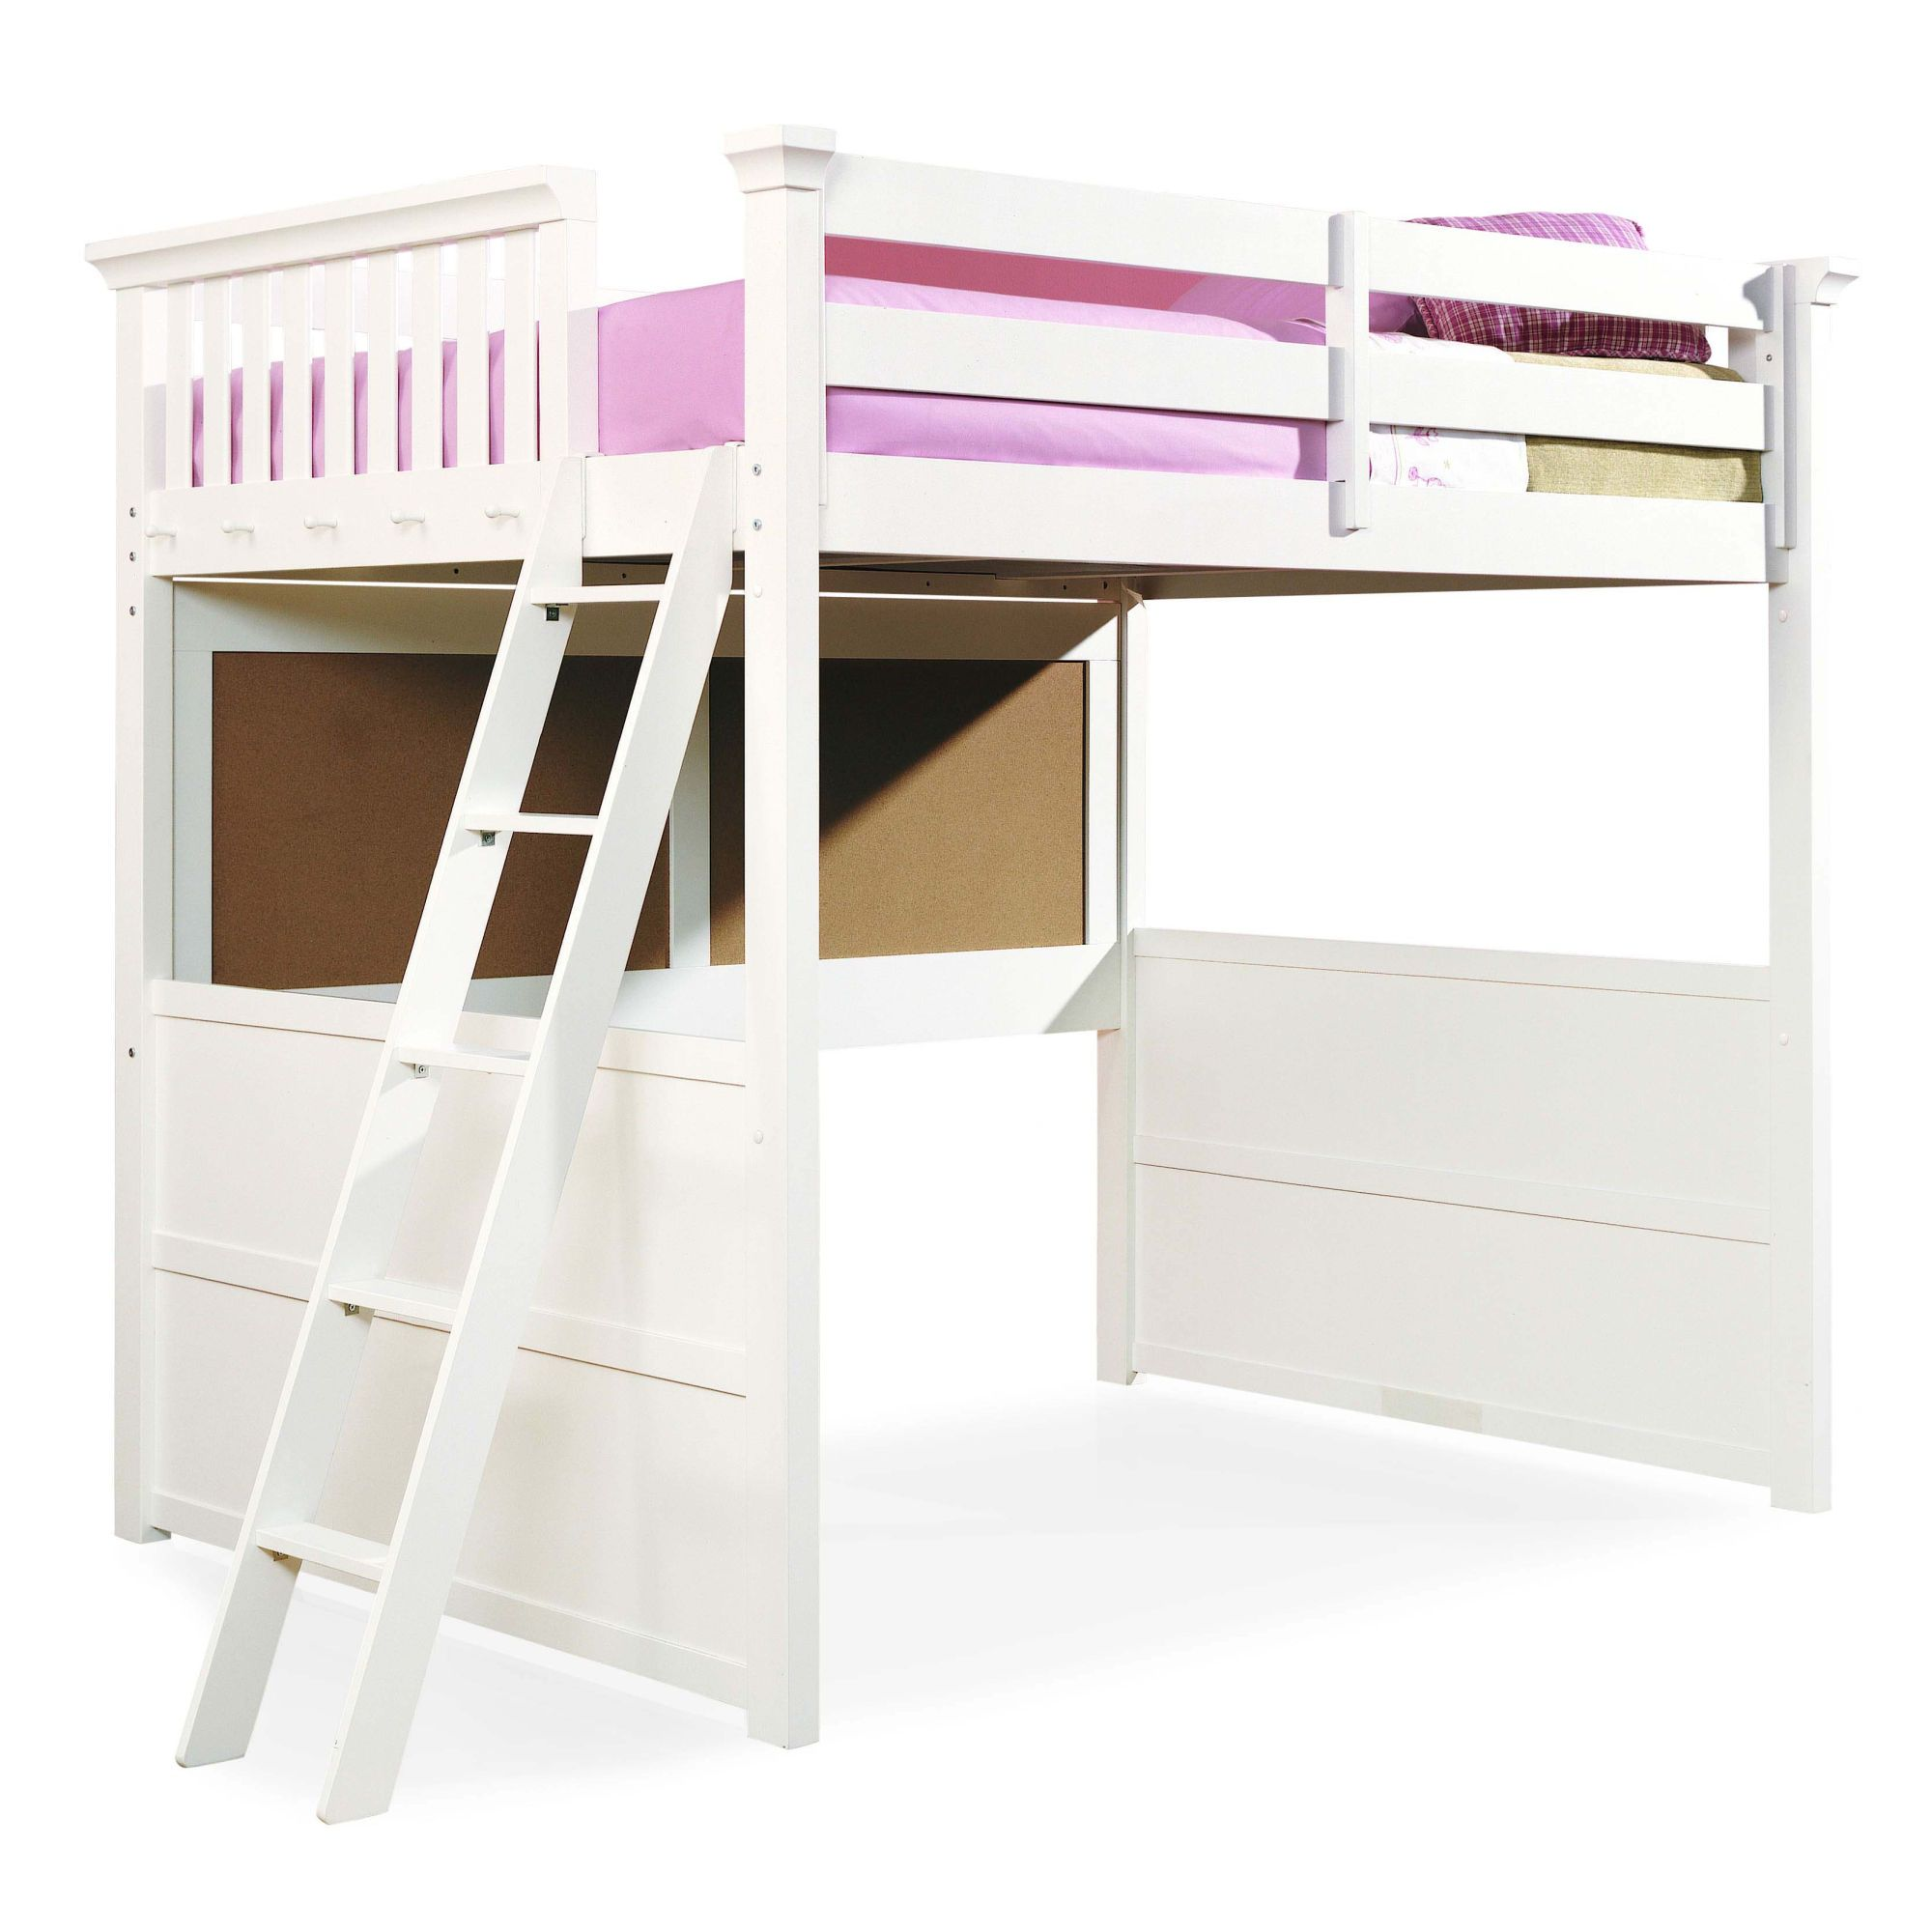 Loft bed for the girls | Girly Girls | Pinterest | Lofts, Room and ...